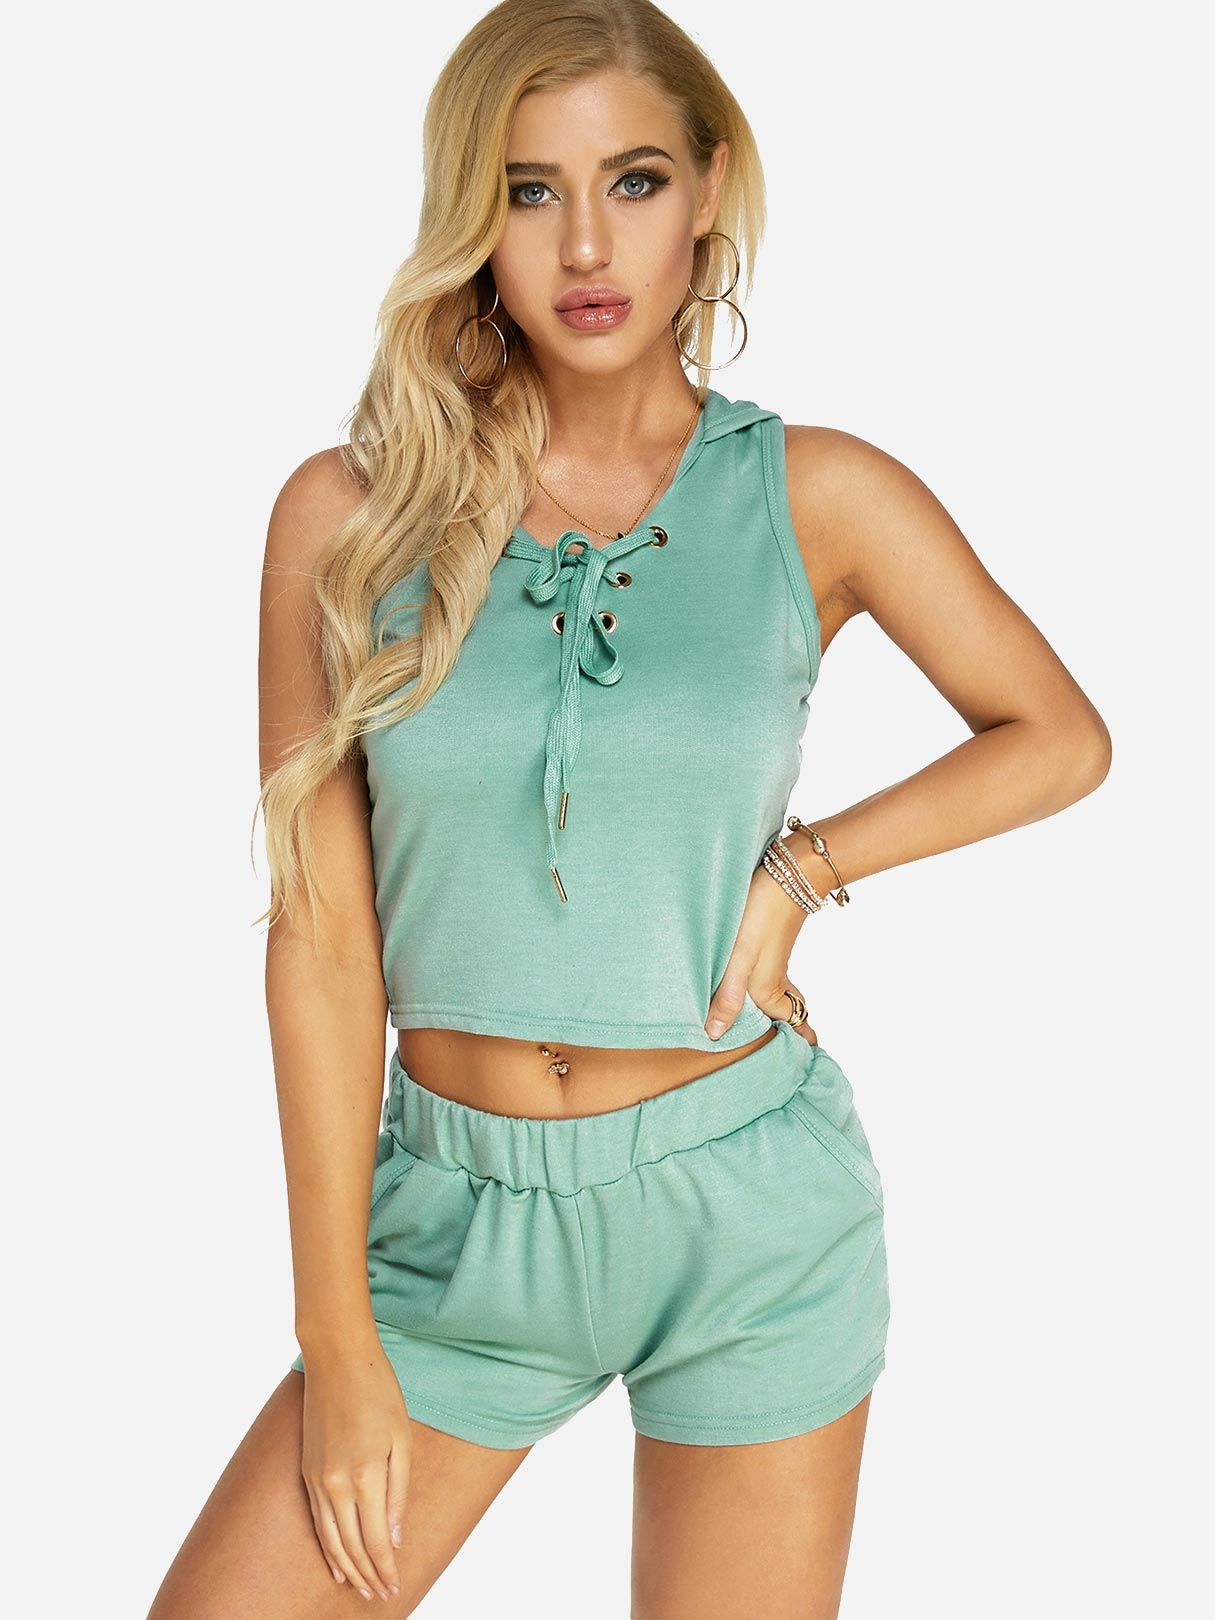 Green Lace-up design Hooded Top and Stretch-waisted Shorts Sports Set